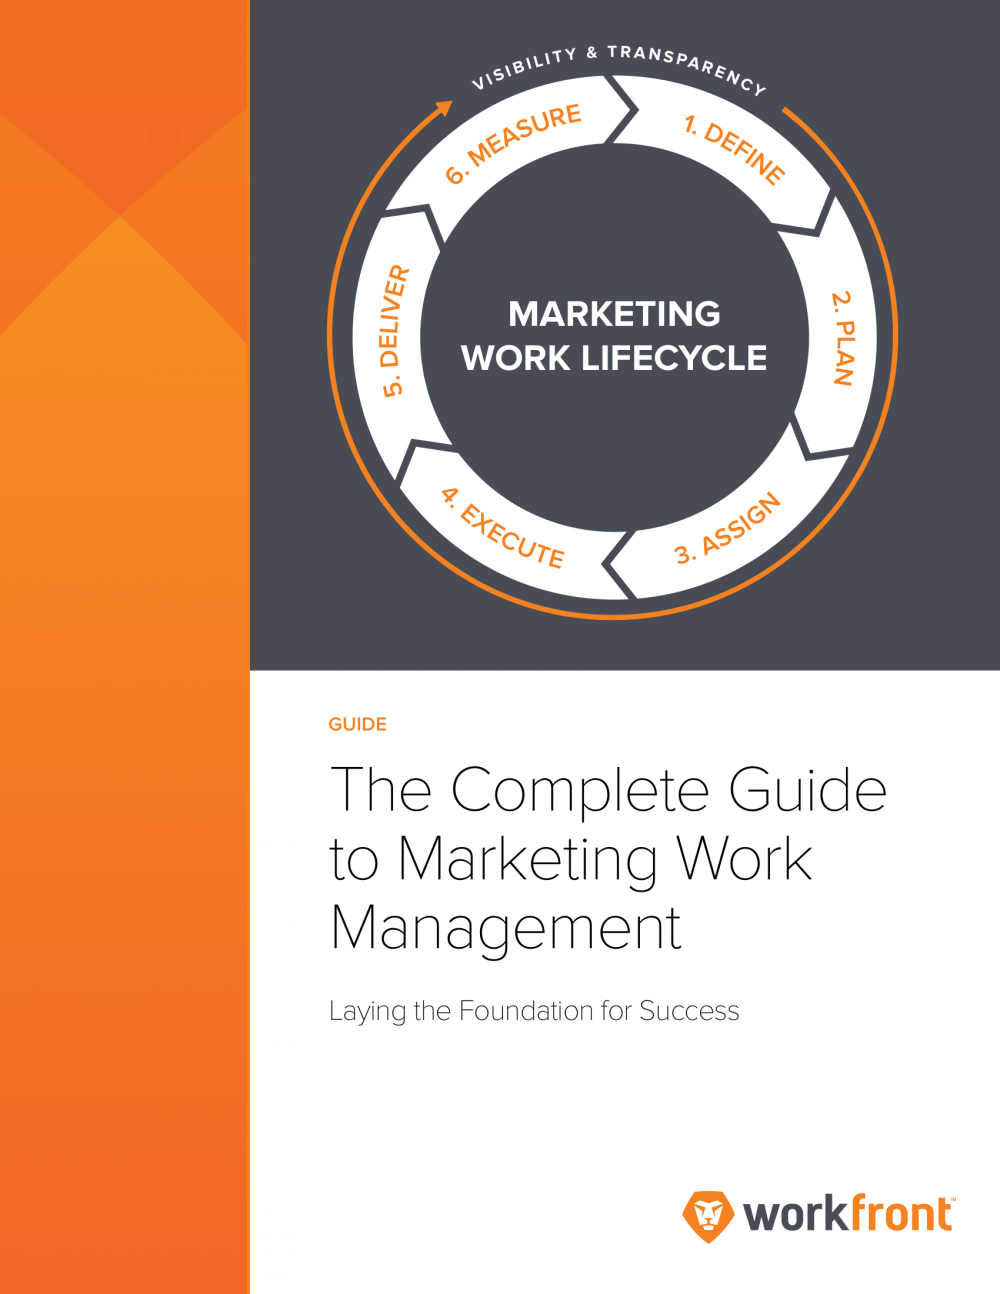 The Complete Guide to Marketing Work Management